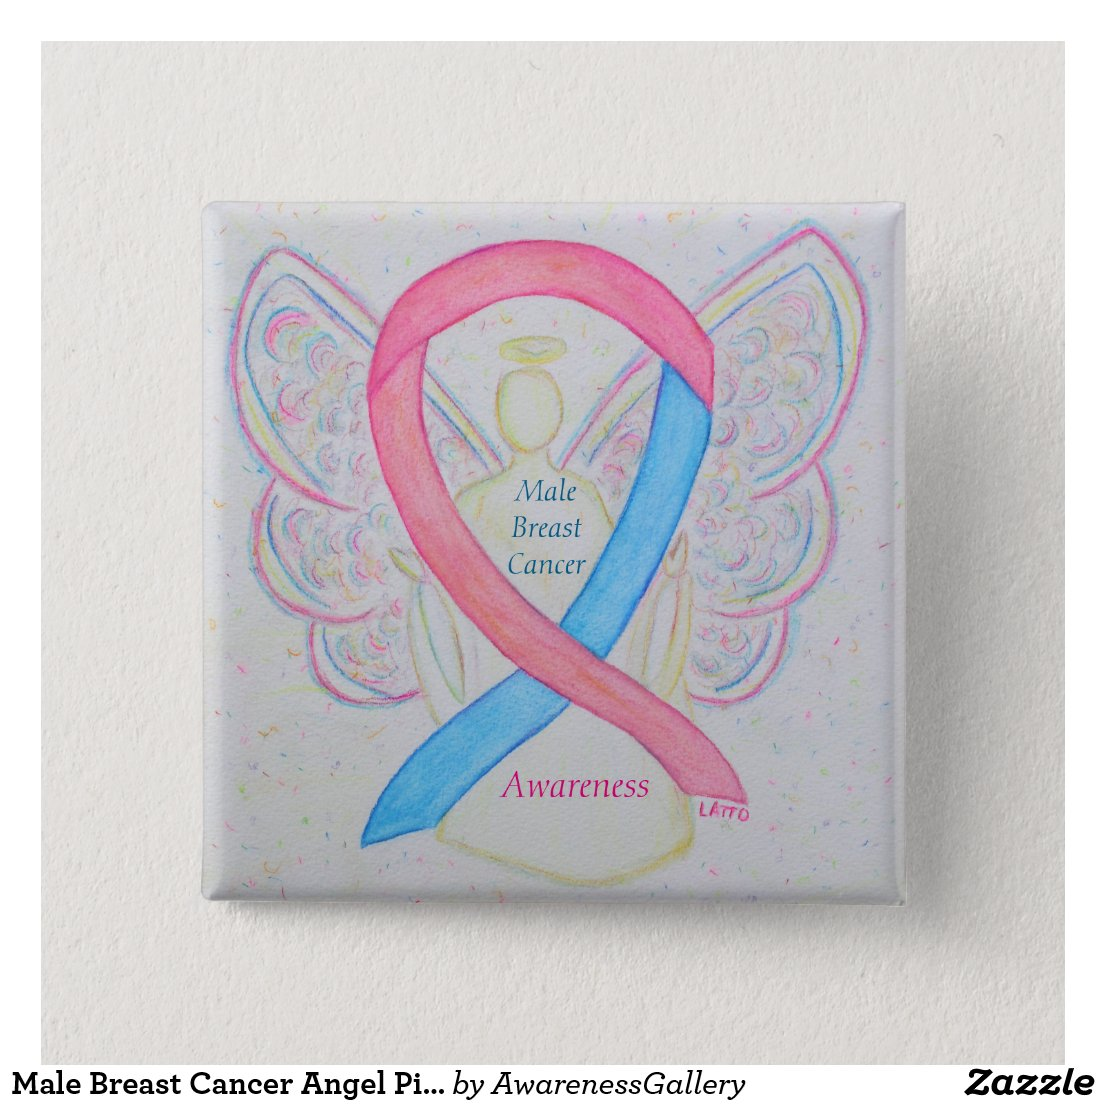 Male Breast Cancer Angel Blue and Pink Awareness Ribbon Pin